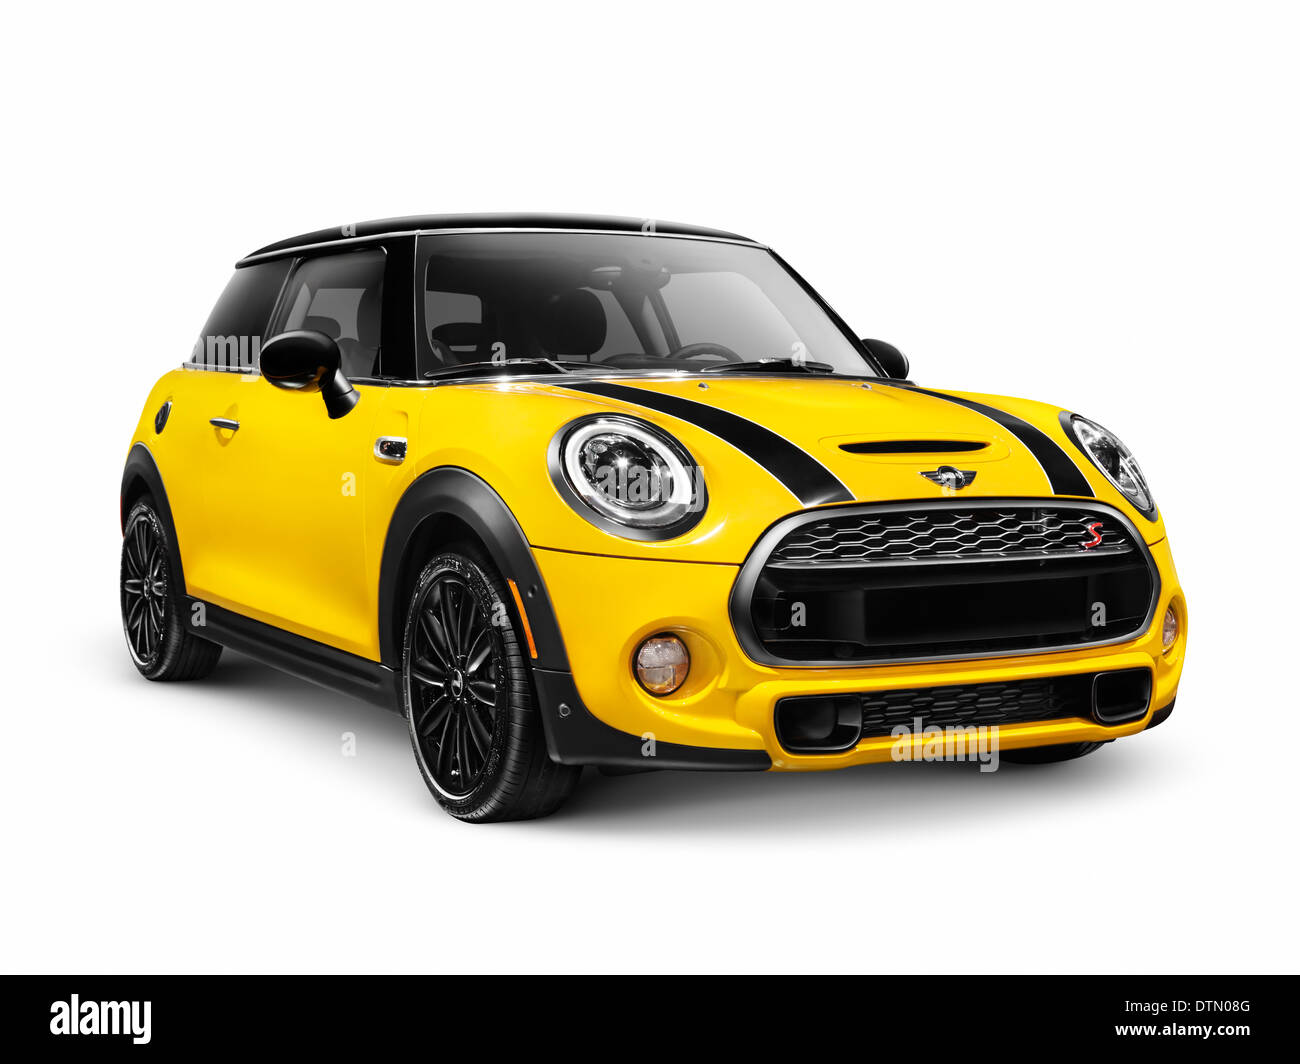 Yellow 2014 Mini Cooper S, Mini Hatch, hatchback compact city car isolated on white background - Stock Image